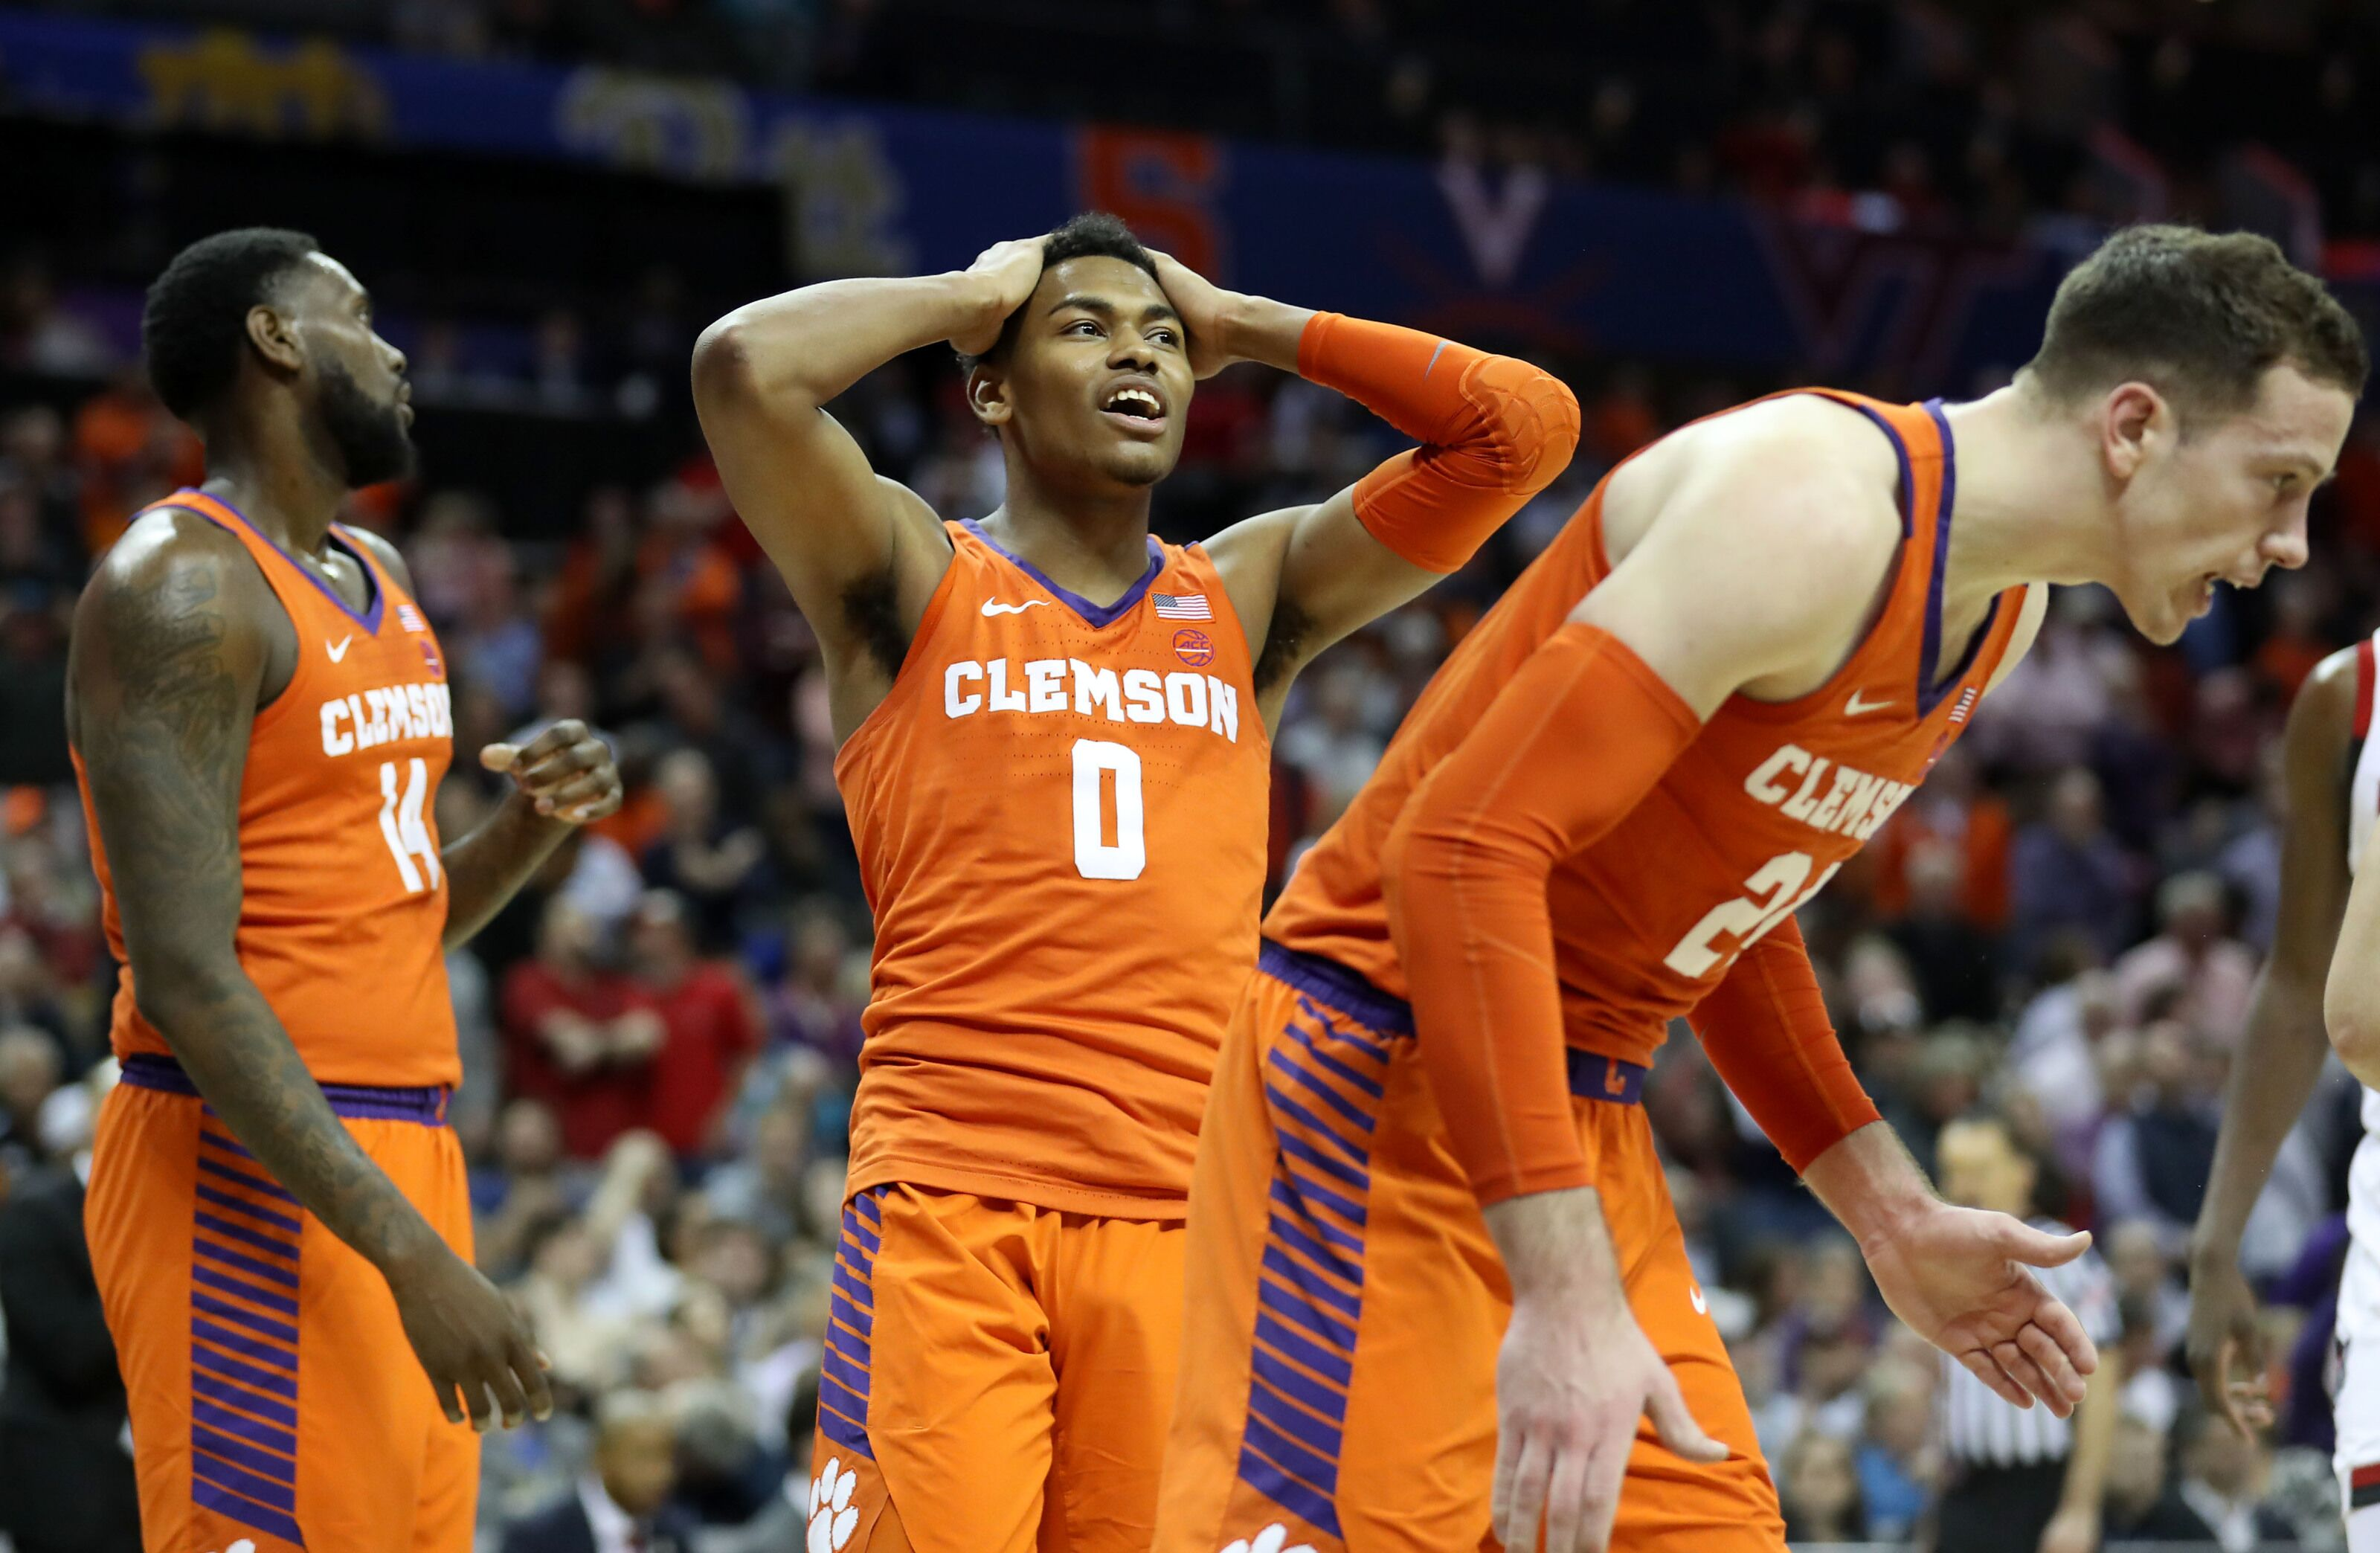 finest selection 7ac34 d7911 Clemson Basketball: Clyde Trapp injury dampens Tigers' 2019 ...